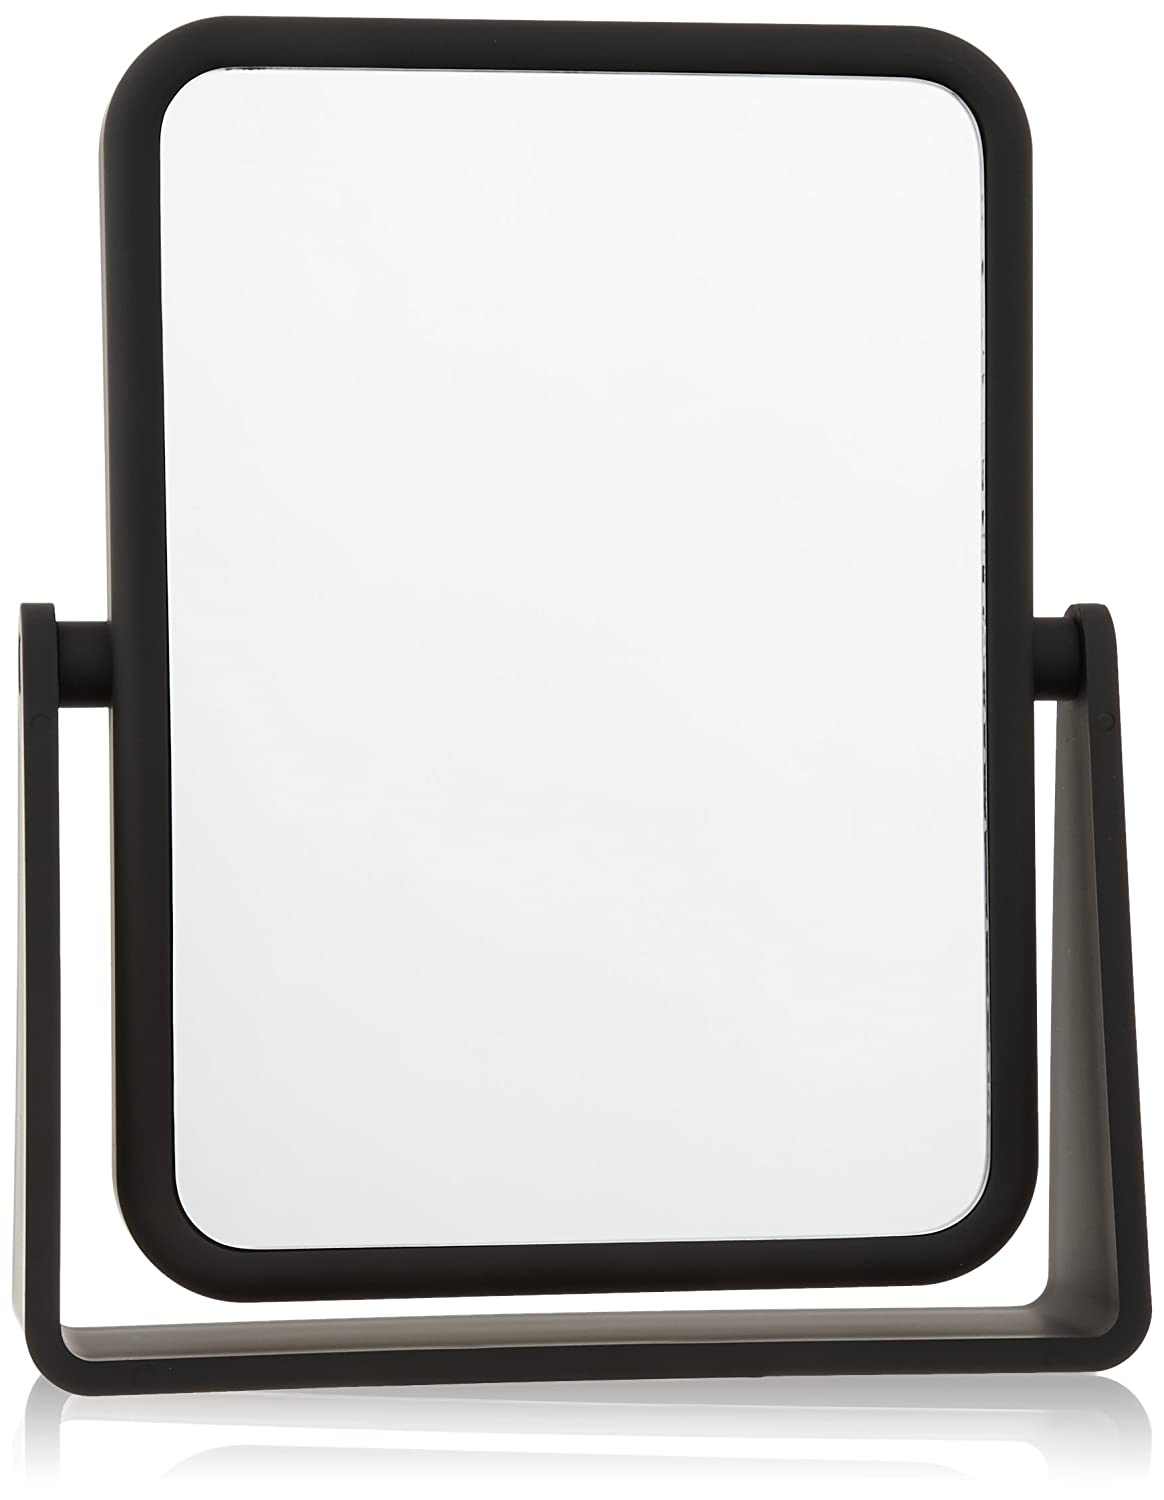 Danielle Soft Touch 7X Rectangular Mirror, Matte Black